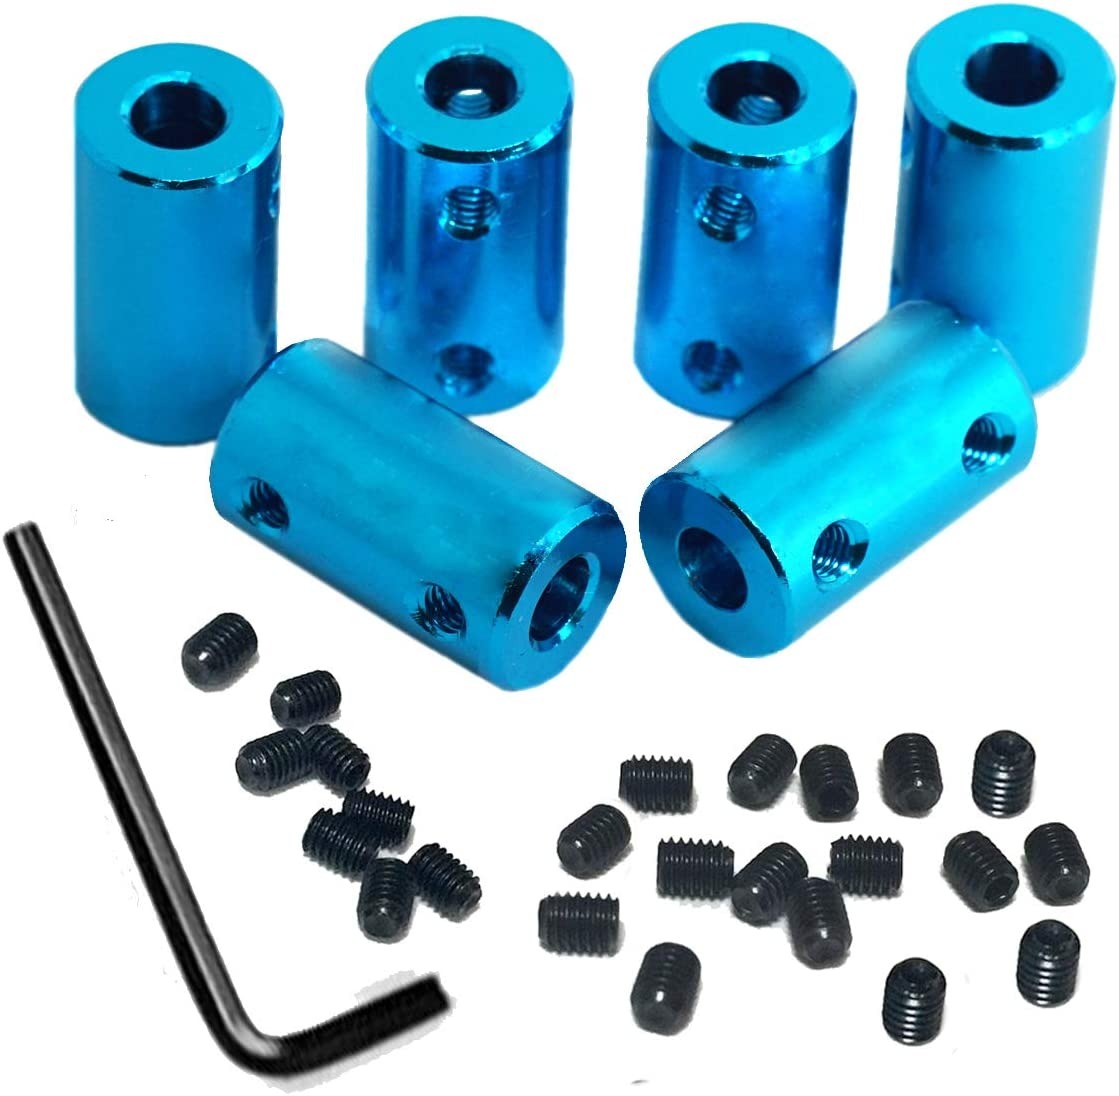 6Pack Treehobby Aluminium Alloy Shaft Rigid Stepper Coupling Mot All stores Al sold out. are sold